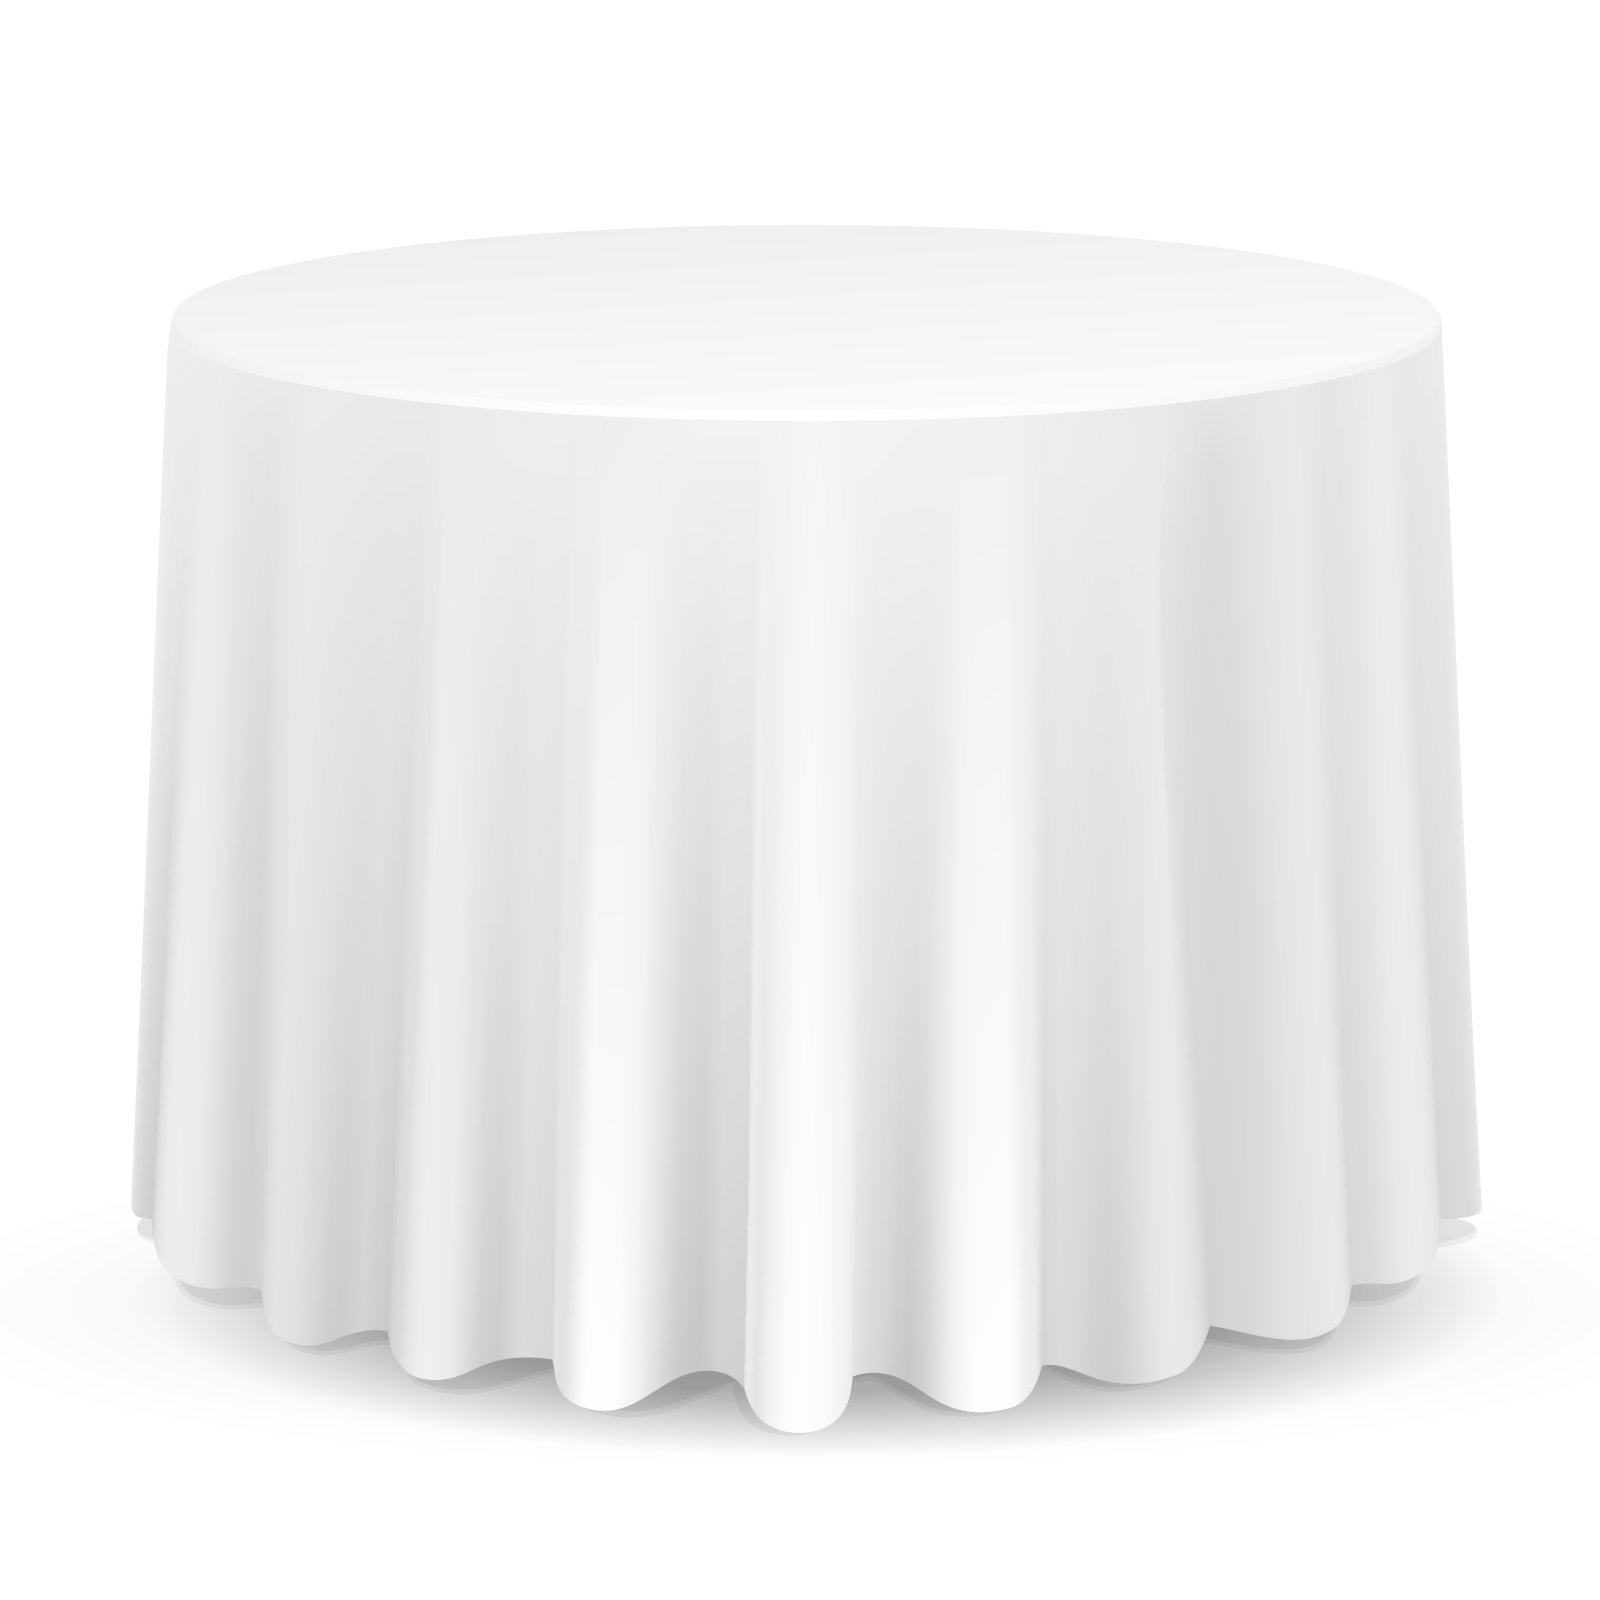 Lann's Linens - 20 Pack of 108'' Round White Polyester Tablecloth Covers for Weddings, Banquets, or Restaurants by Lanns Linens (Image #1)